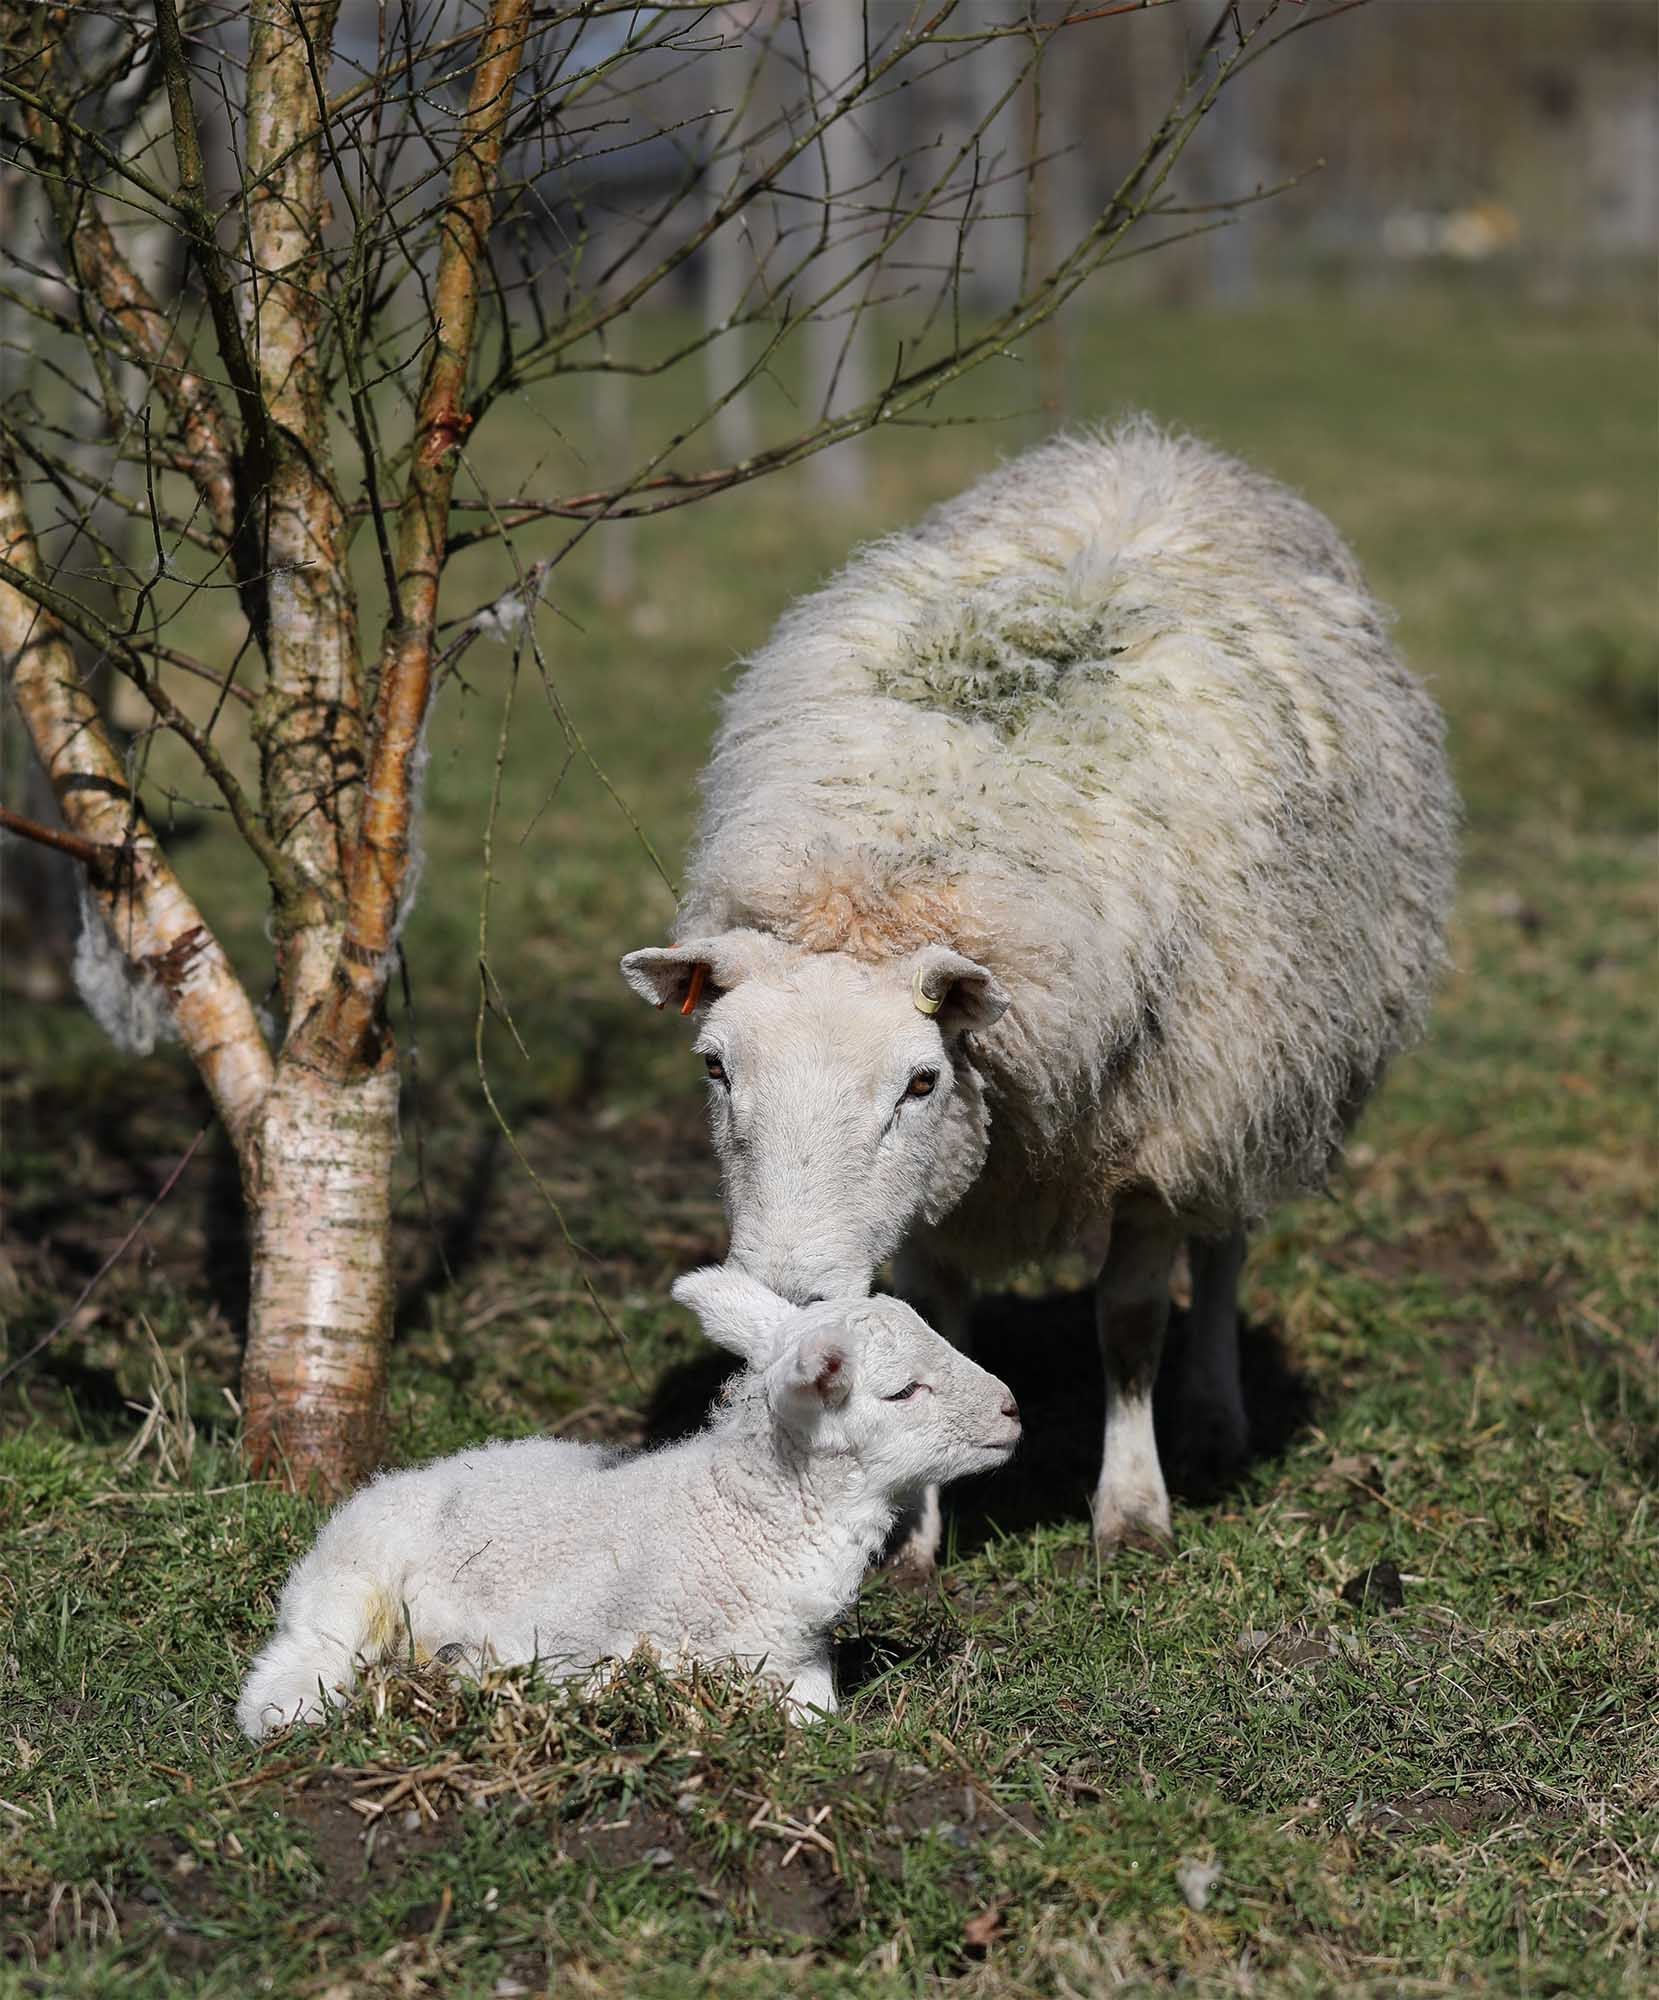 Ewe and lamb in the field